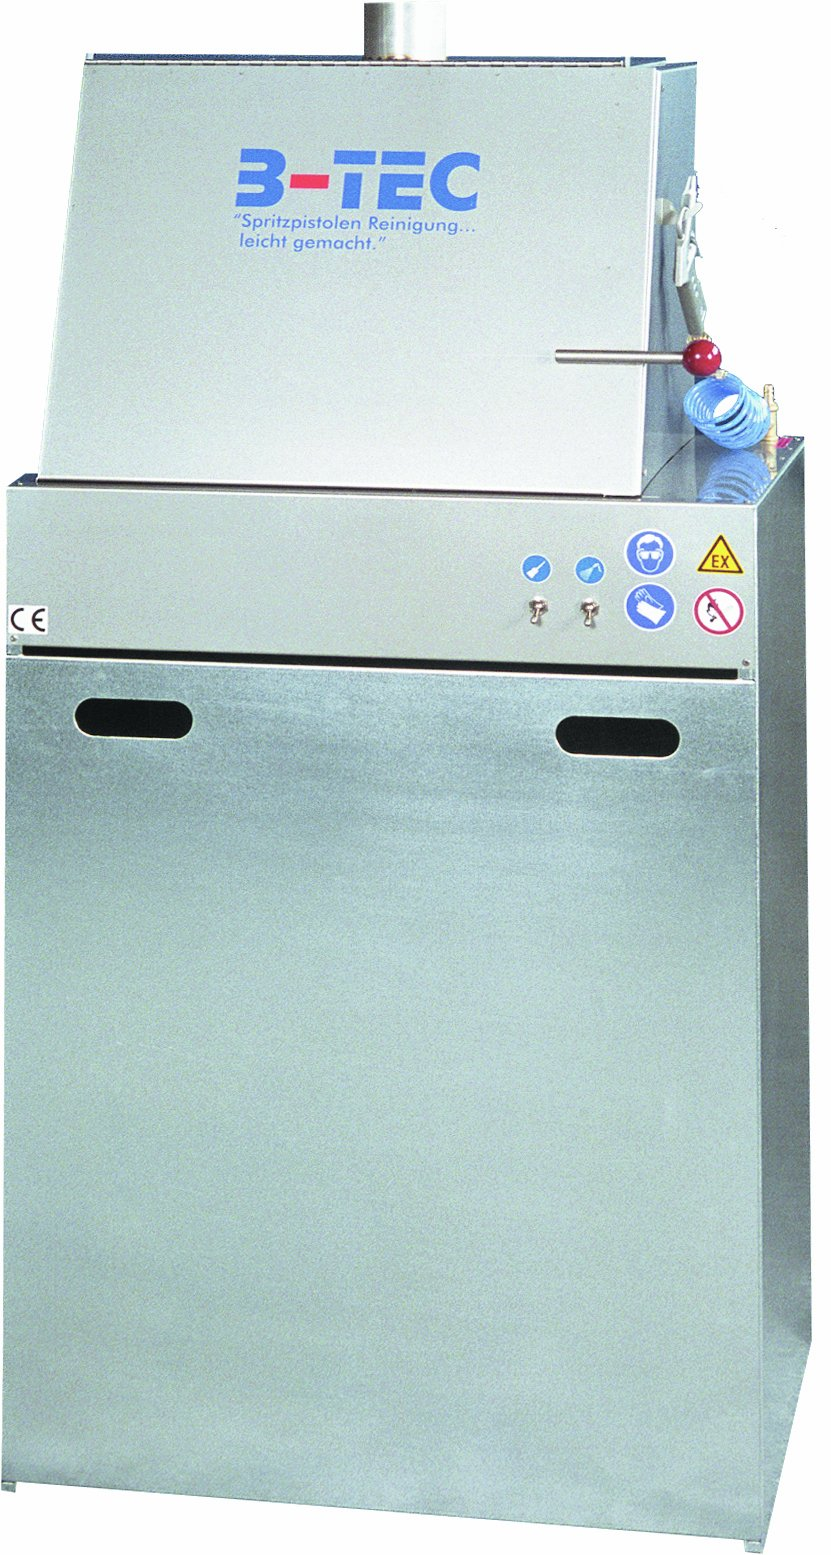 B-TEC Systems M-800 Stainless Steel Manually Junior Spray Gun Washer, 29'' Length x 23-1/2'' Width x 77'' Height,for Solvent or Water